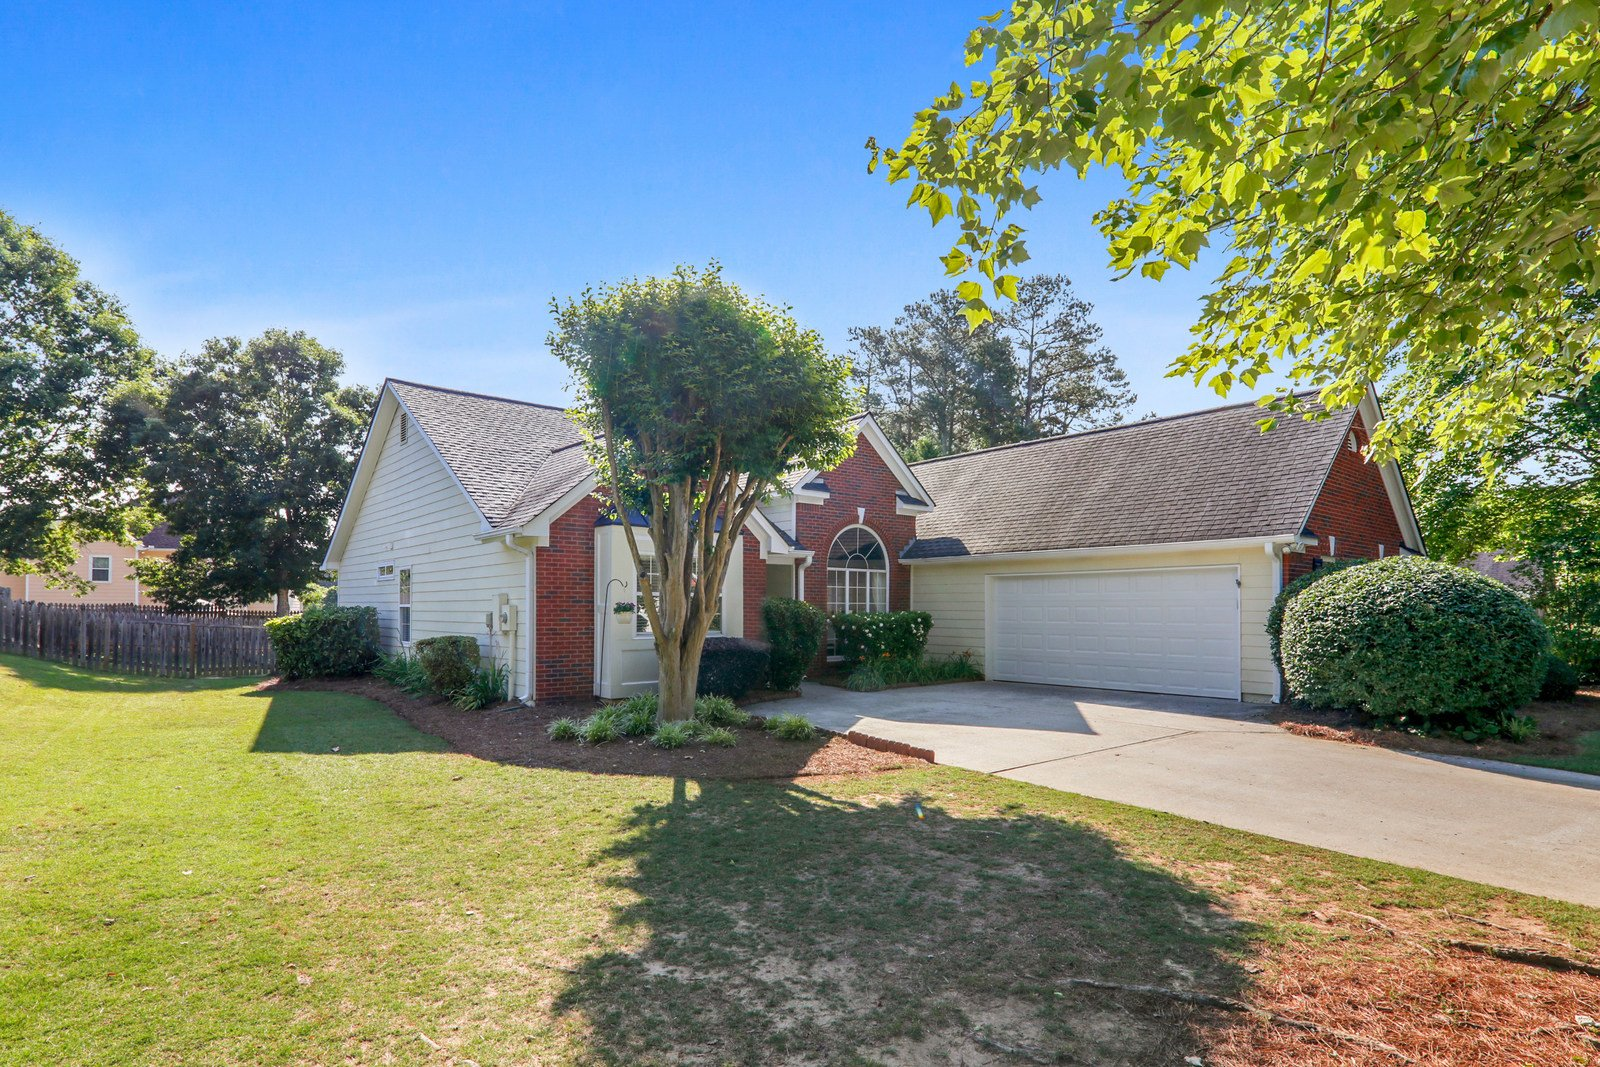 Homes for sale in active adult community cumming, ga